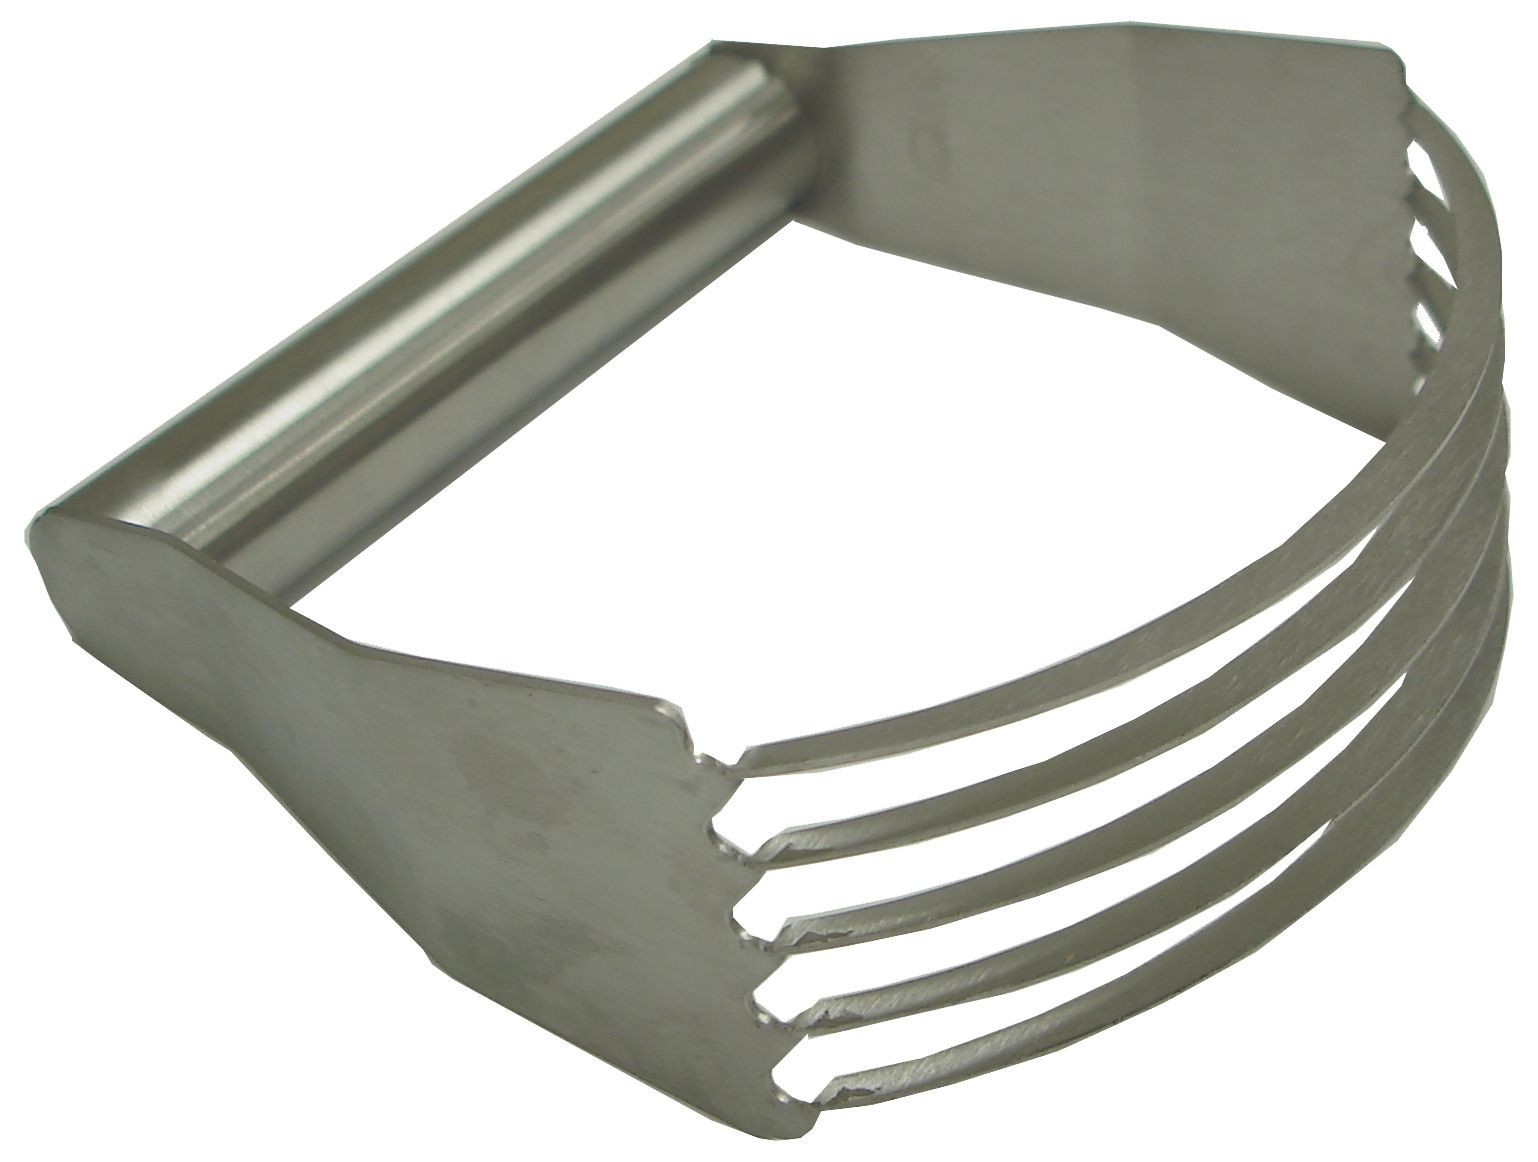 Stainless Steel 5-Blade Pastry Blender